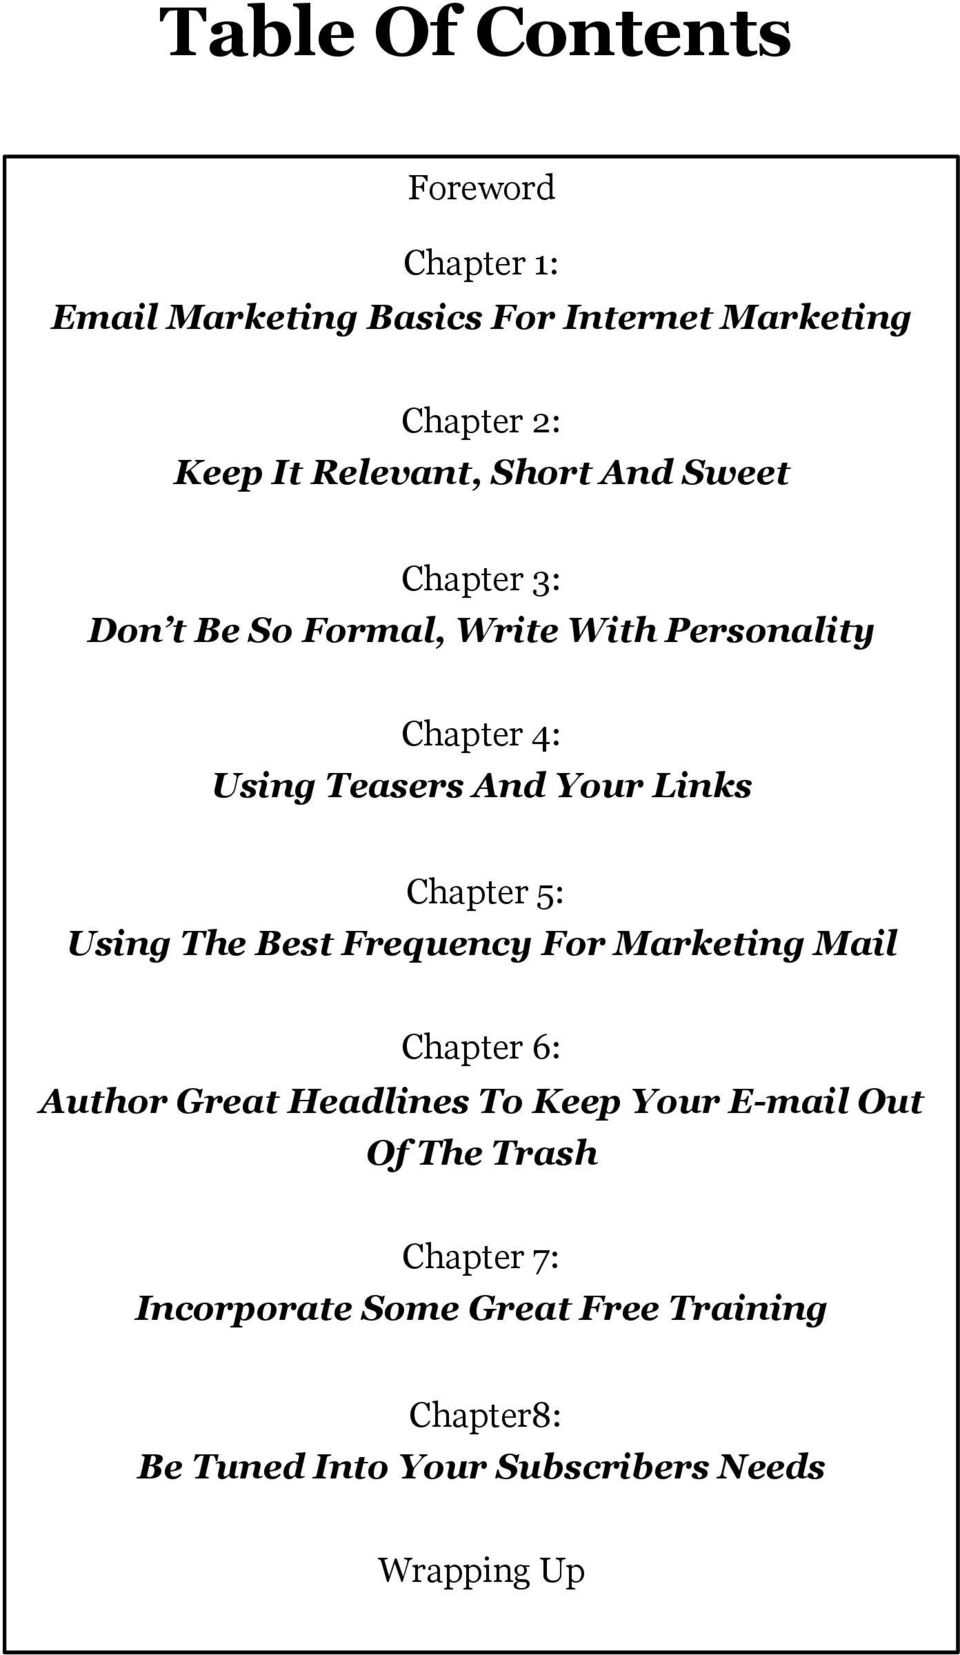 Chapter 5: Using The Best Frequency For Marketing Mail Chapter 6: Author Great Headlines To Keep Your E-mail Out